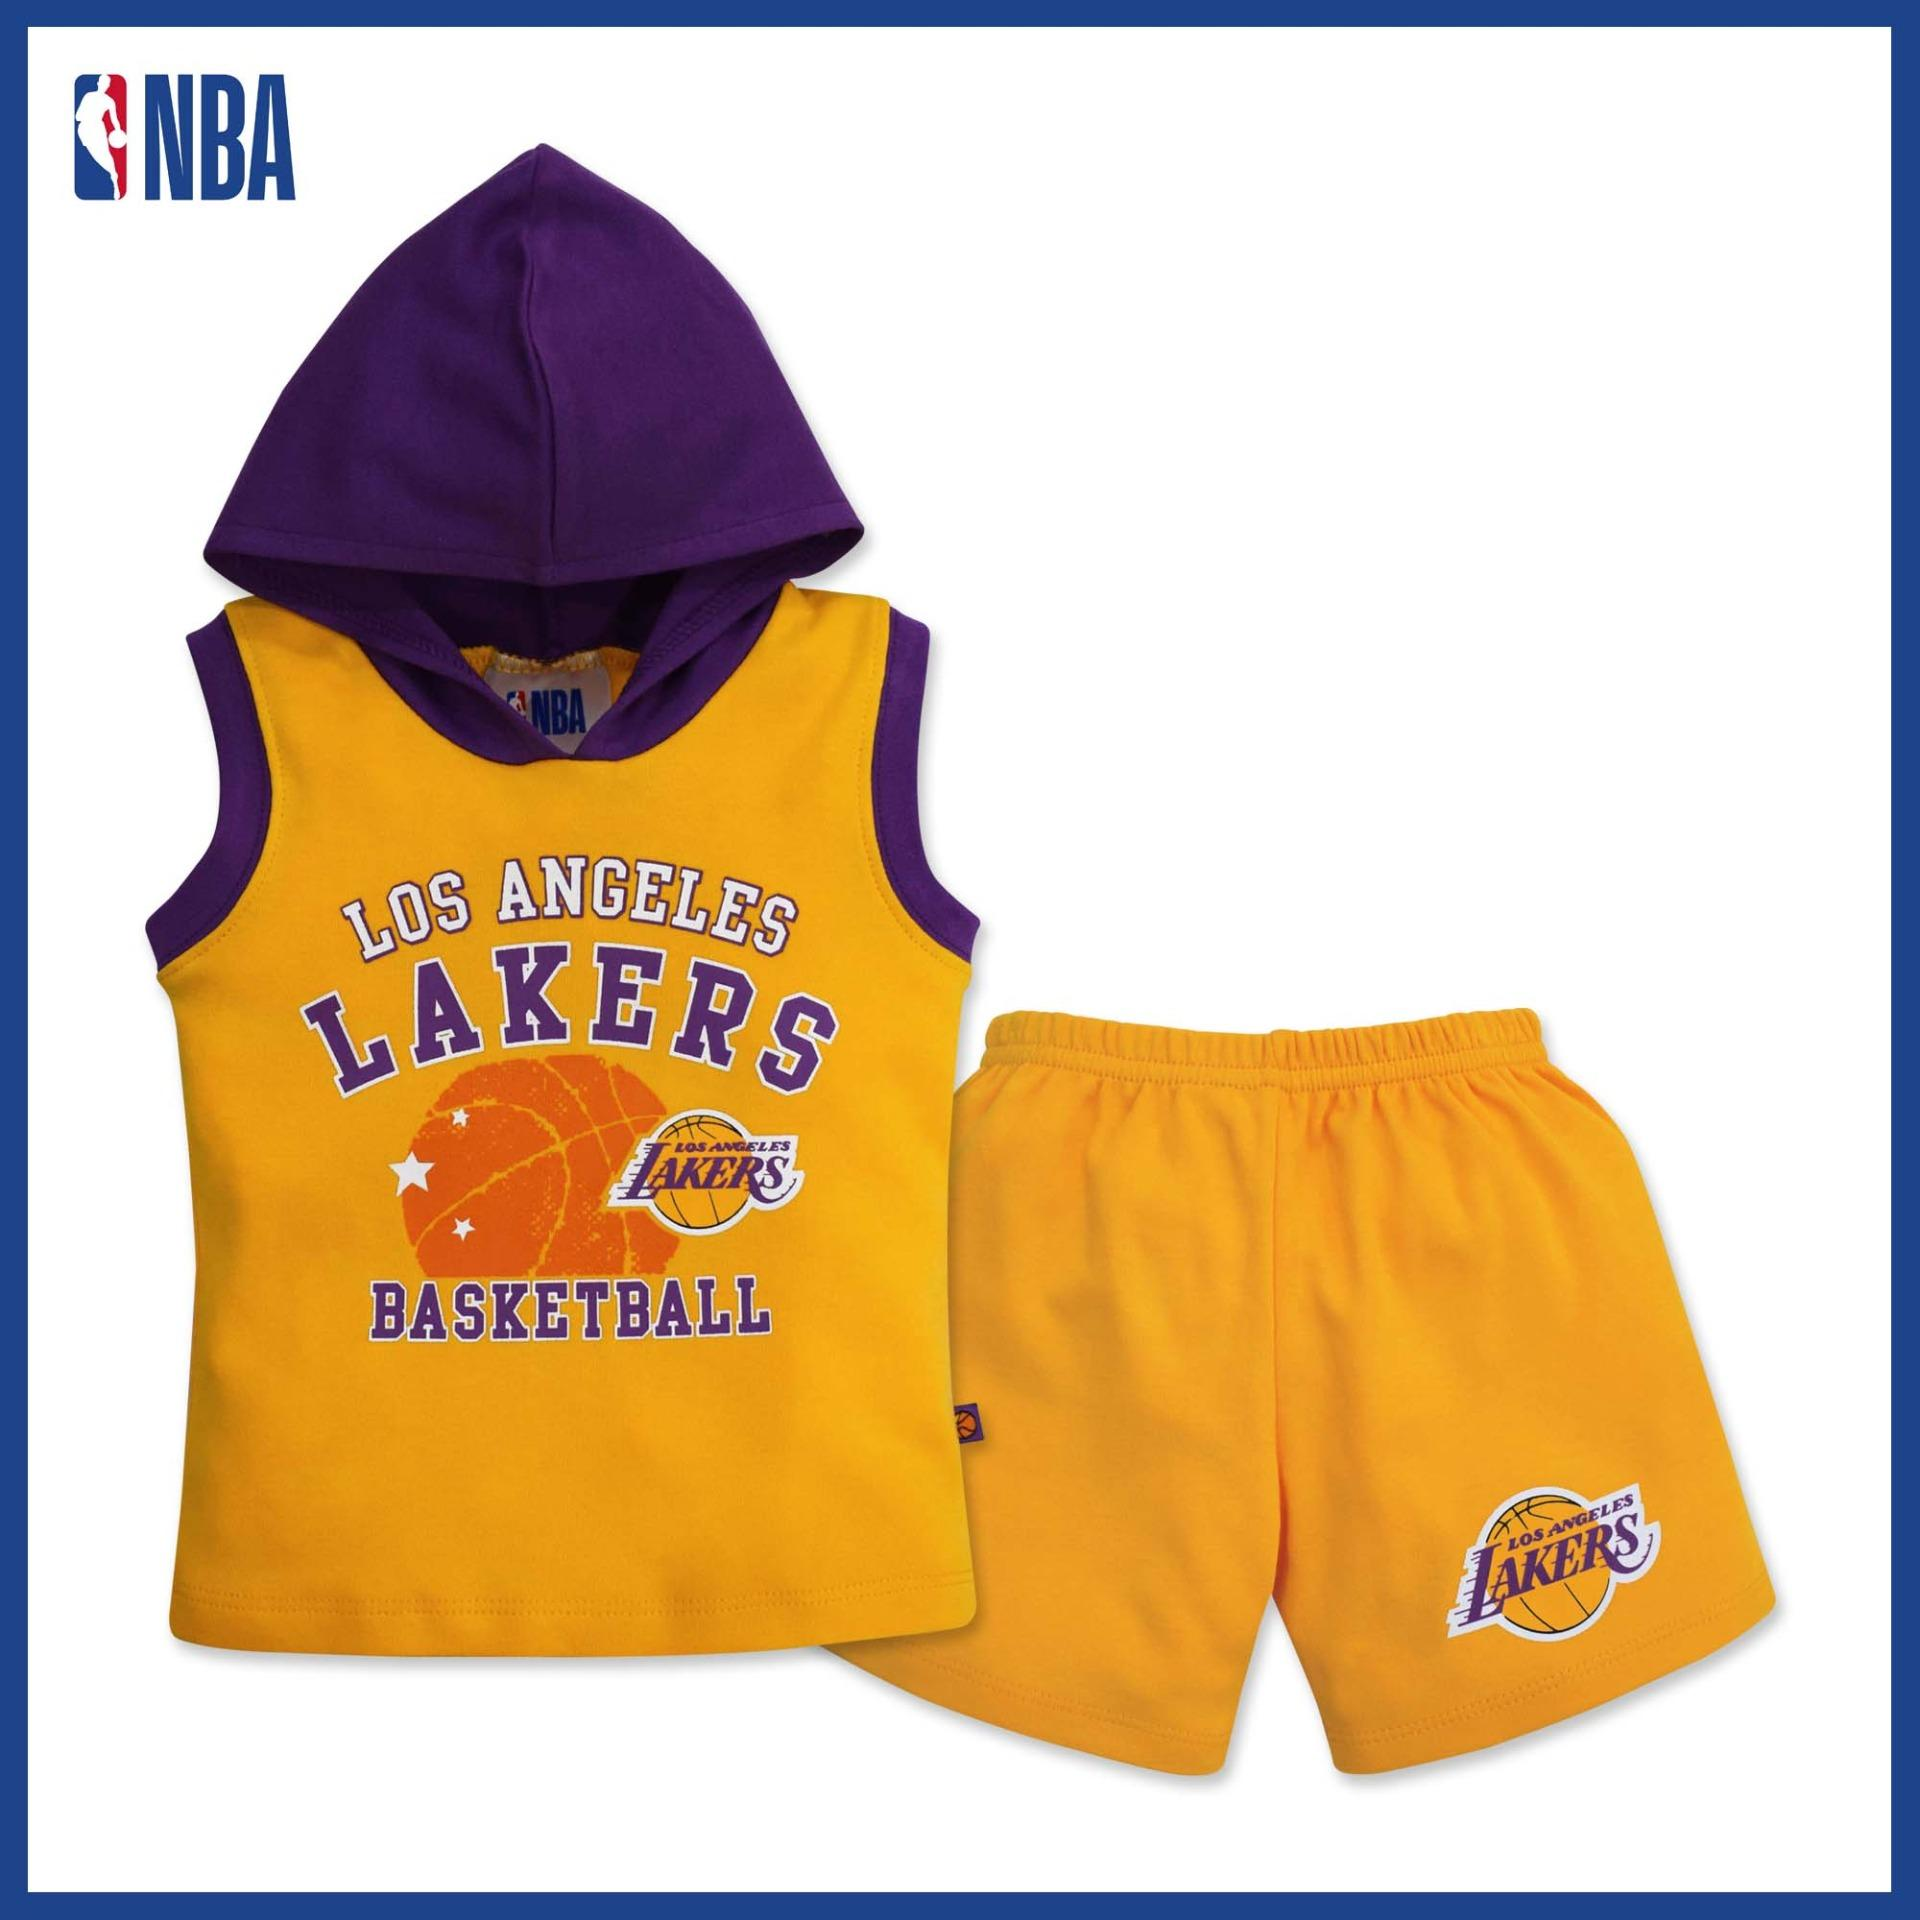 8db94969544 NBA Baby - Muscle Shirt with Hood and Shorts Set (Baby Baller - Lakers)